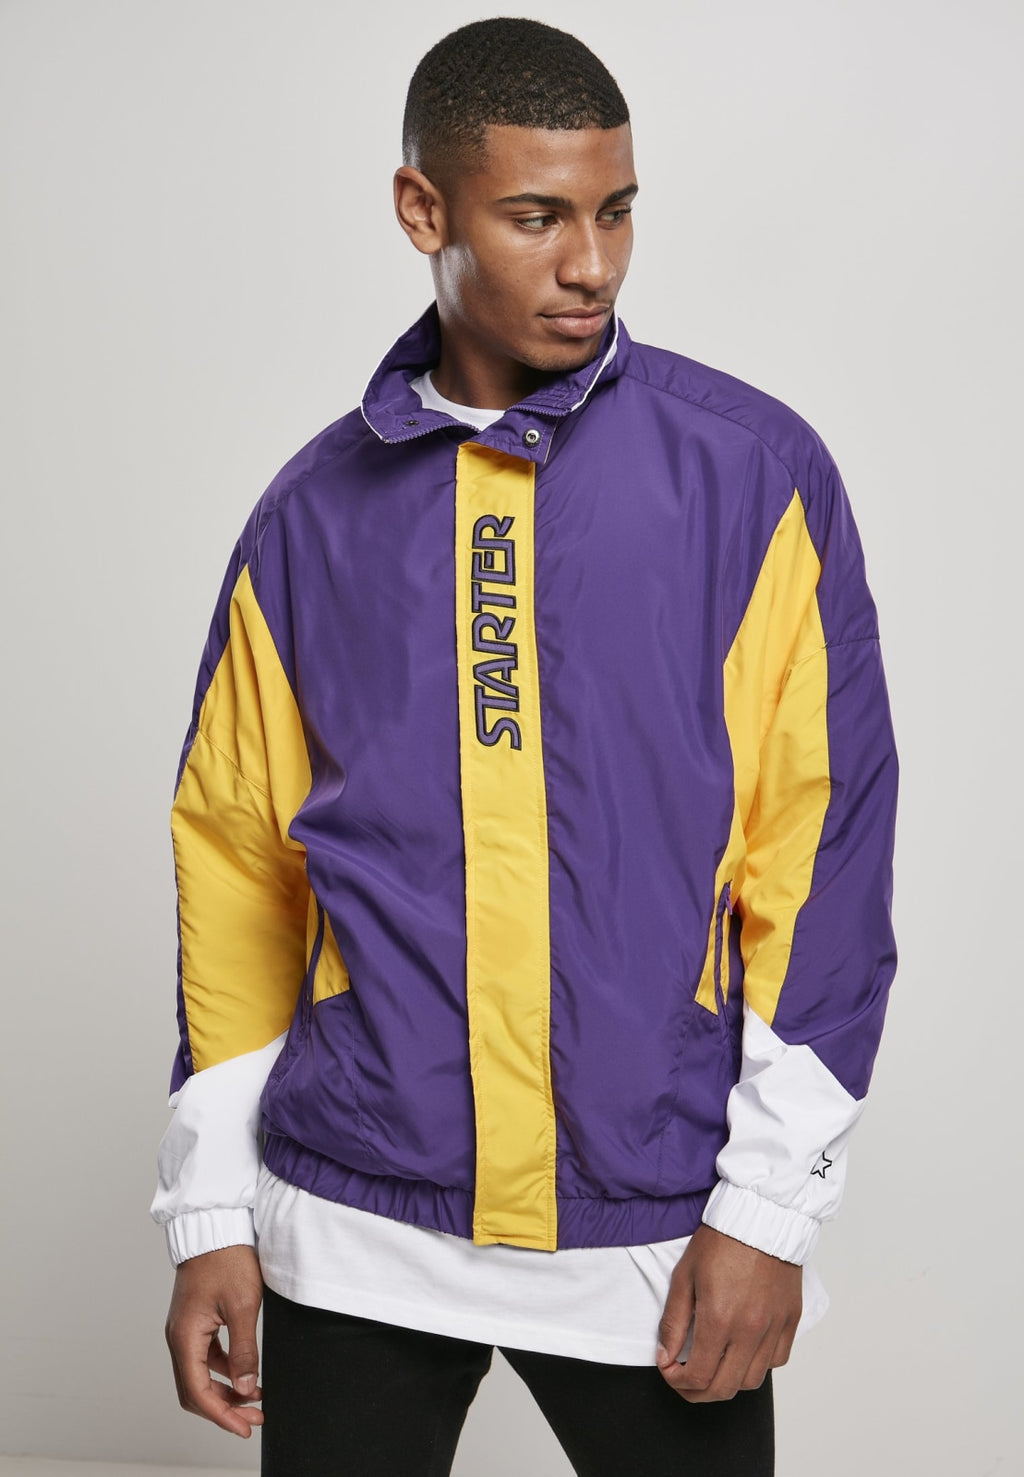 Starter Track Jacket - Real Violet/california Yellow/white Jacket Light Starter